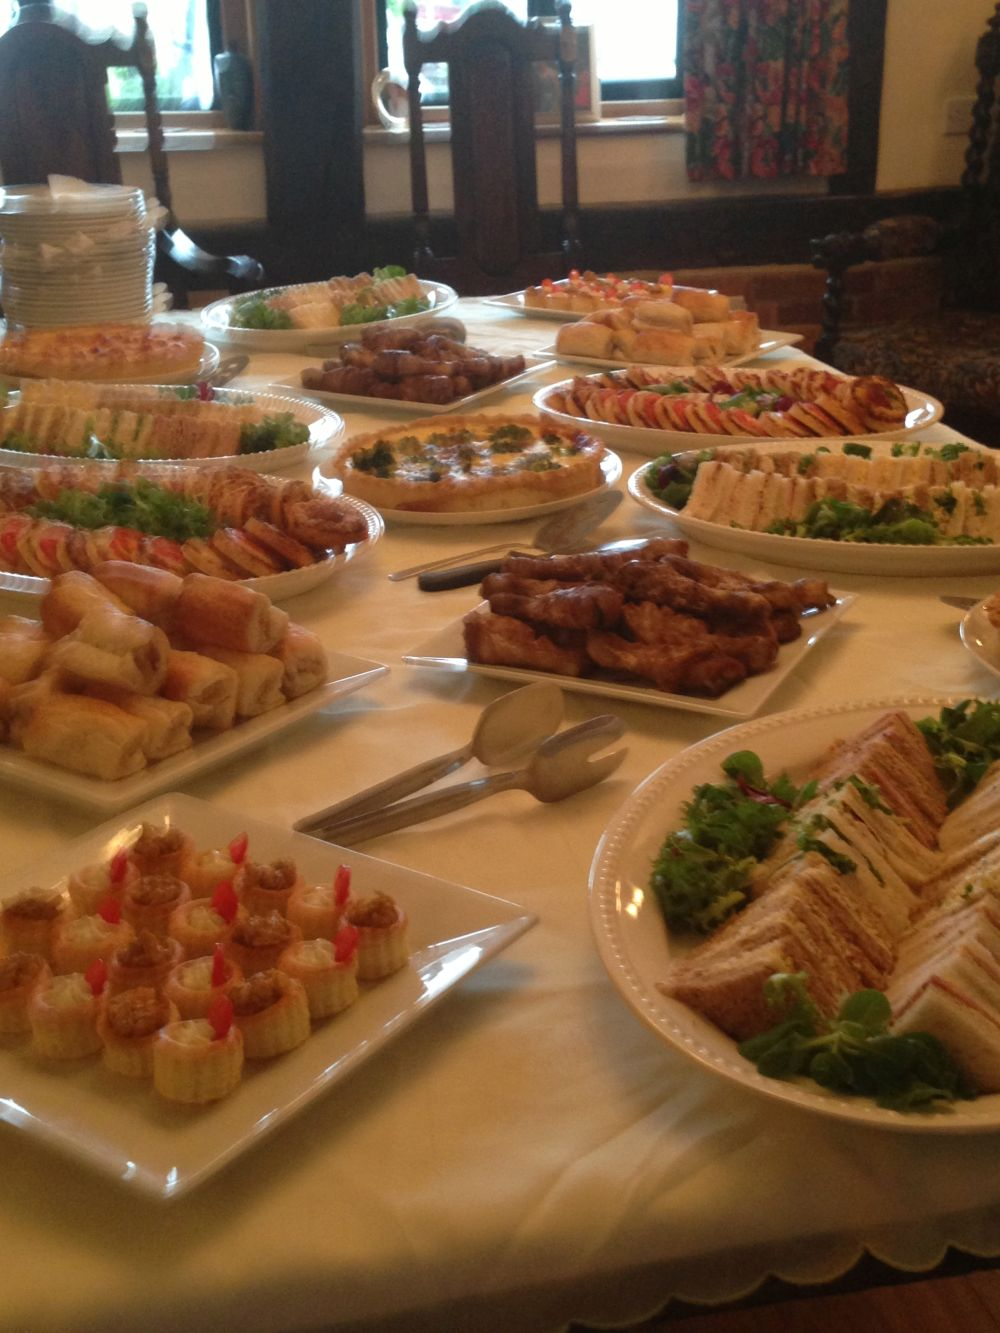 Funeral Finger Buffet Menus Green Fig Catering In Sussex